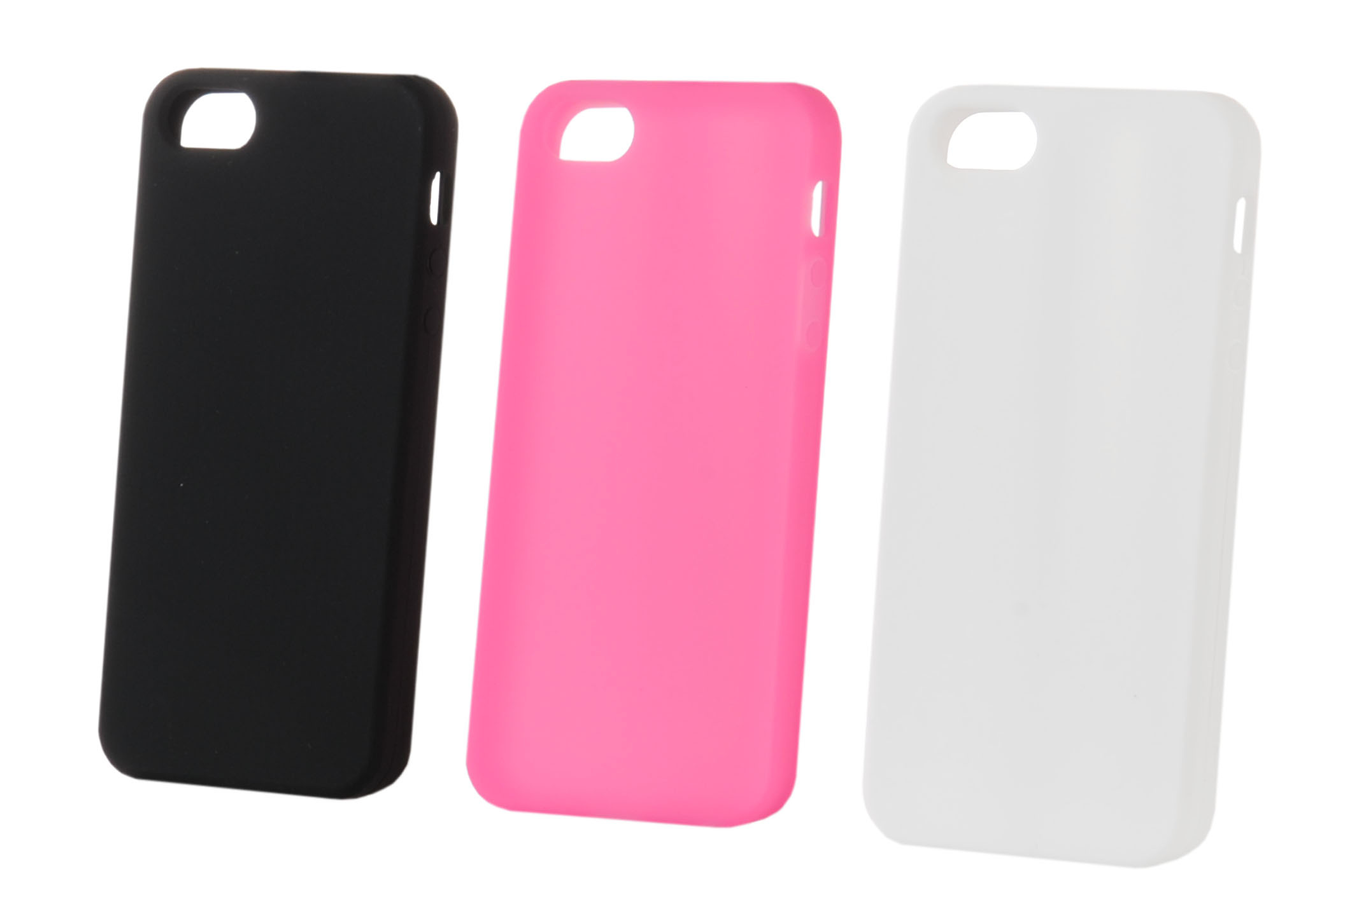 Housse pour iphone muvit lot 3 coques silicone iphone 5 5s for Housse pour iphone 5